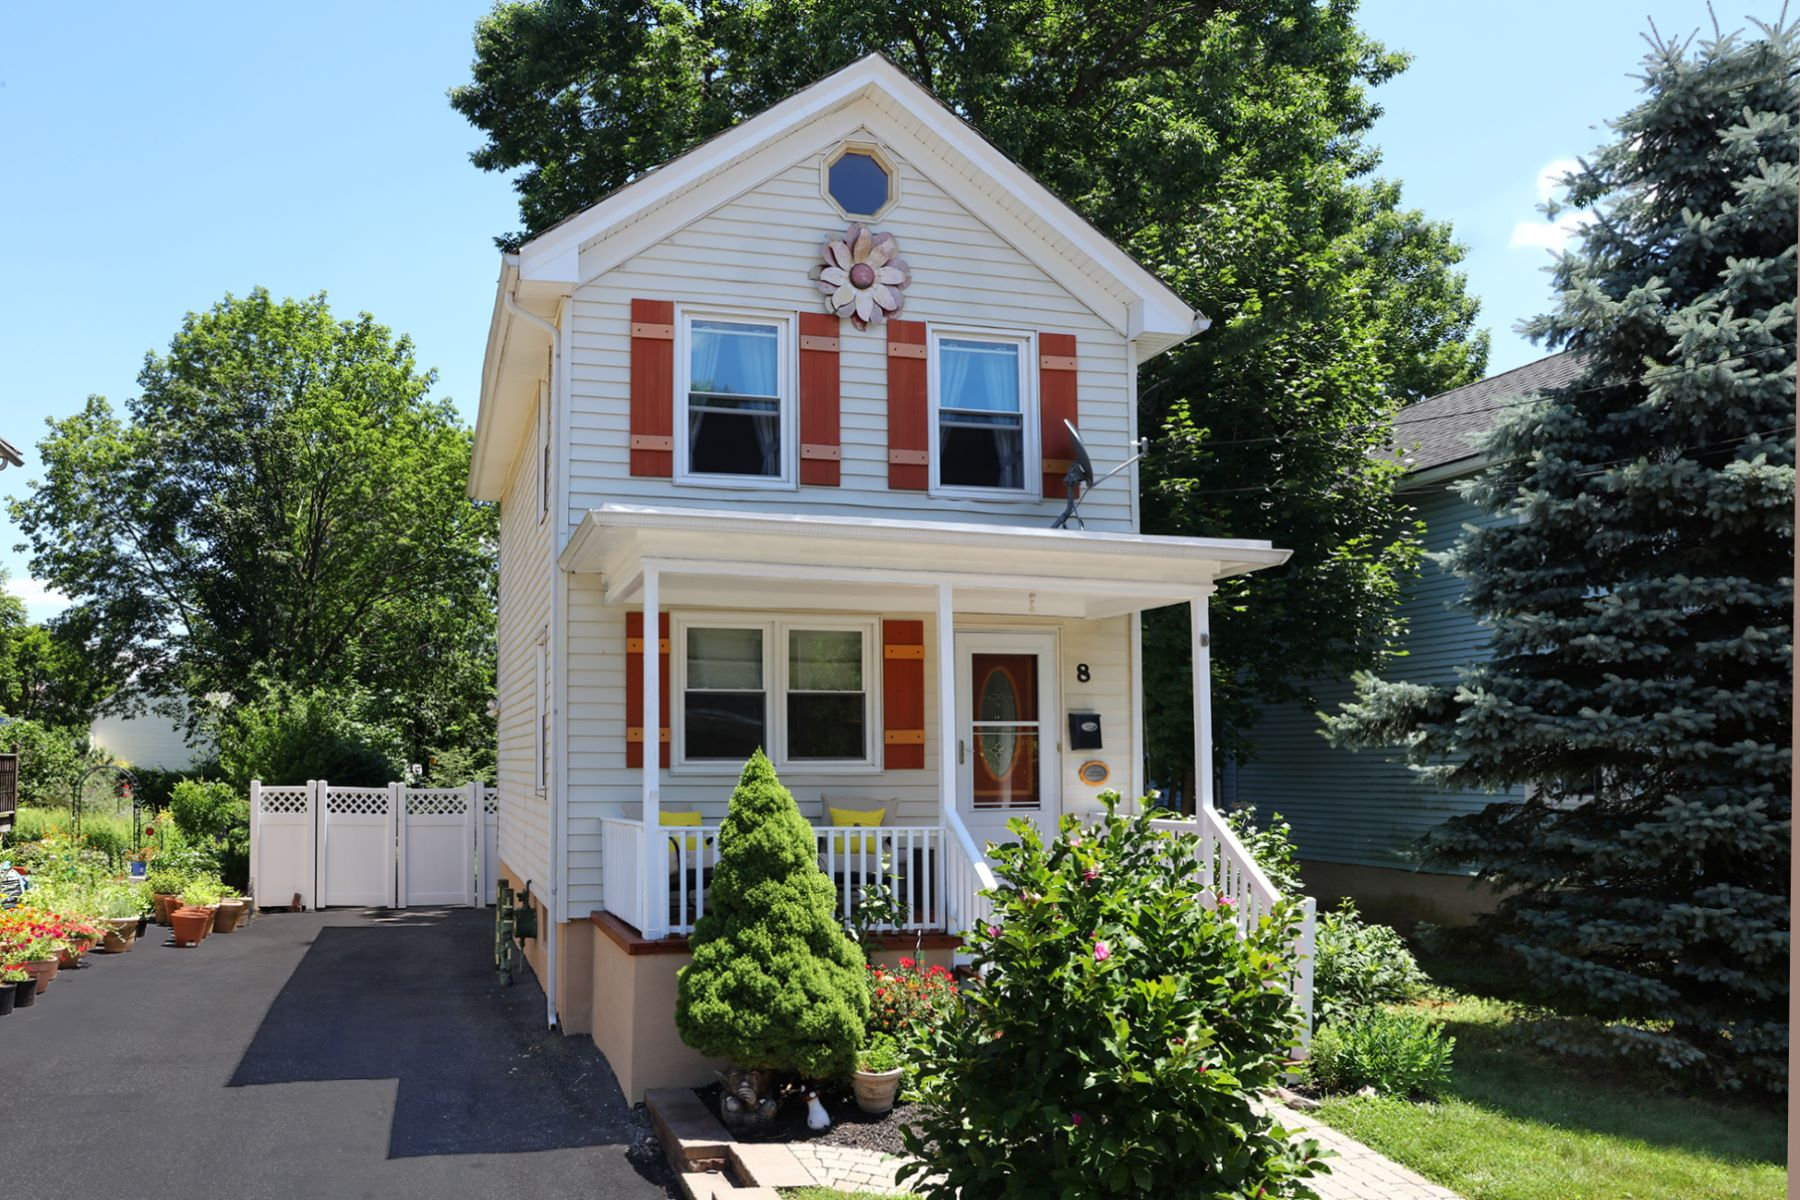 Single Family Homes for Sale at Built to Last. Priced to Sell! 8 Brown Street Flemington, New Jersey 08822 United States